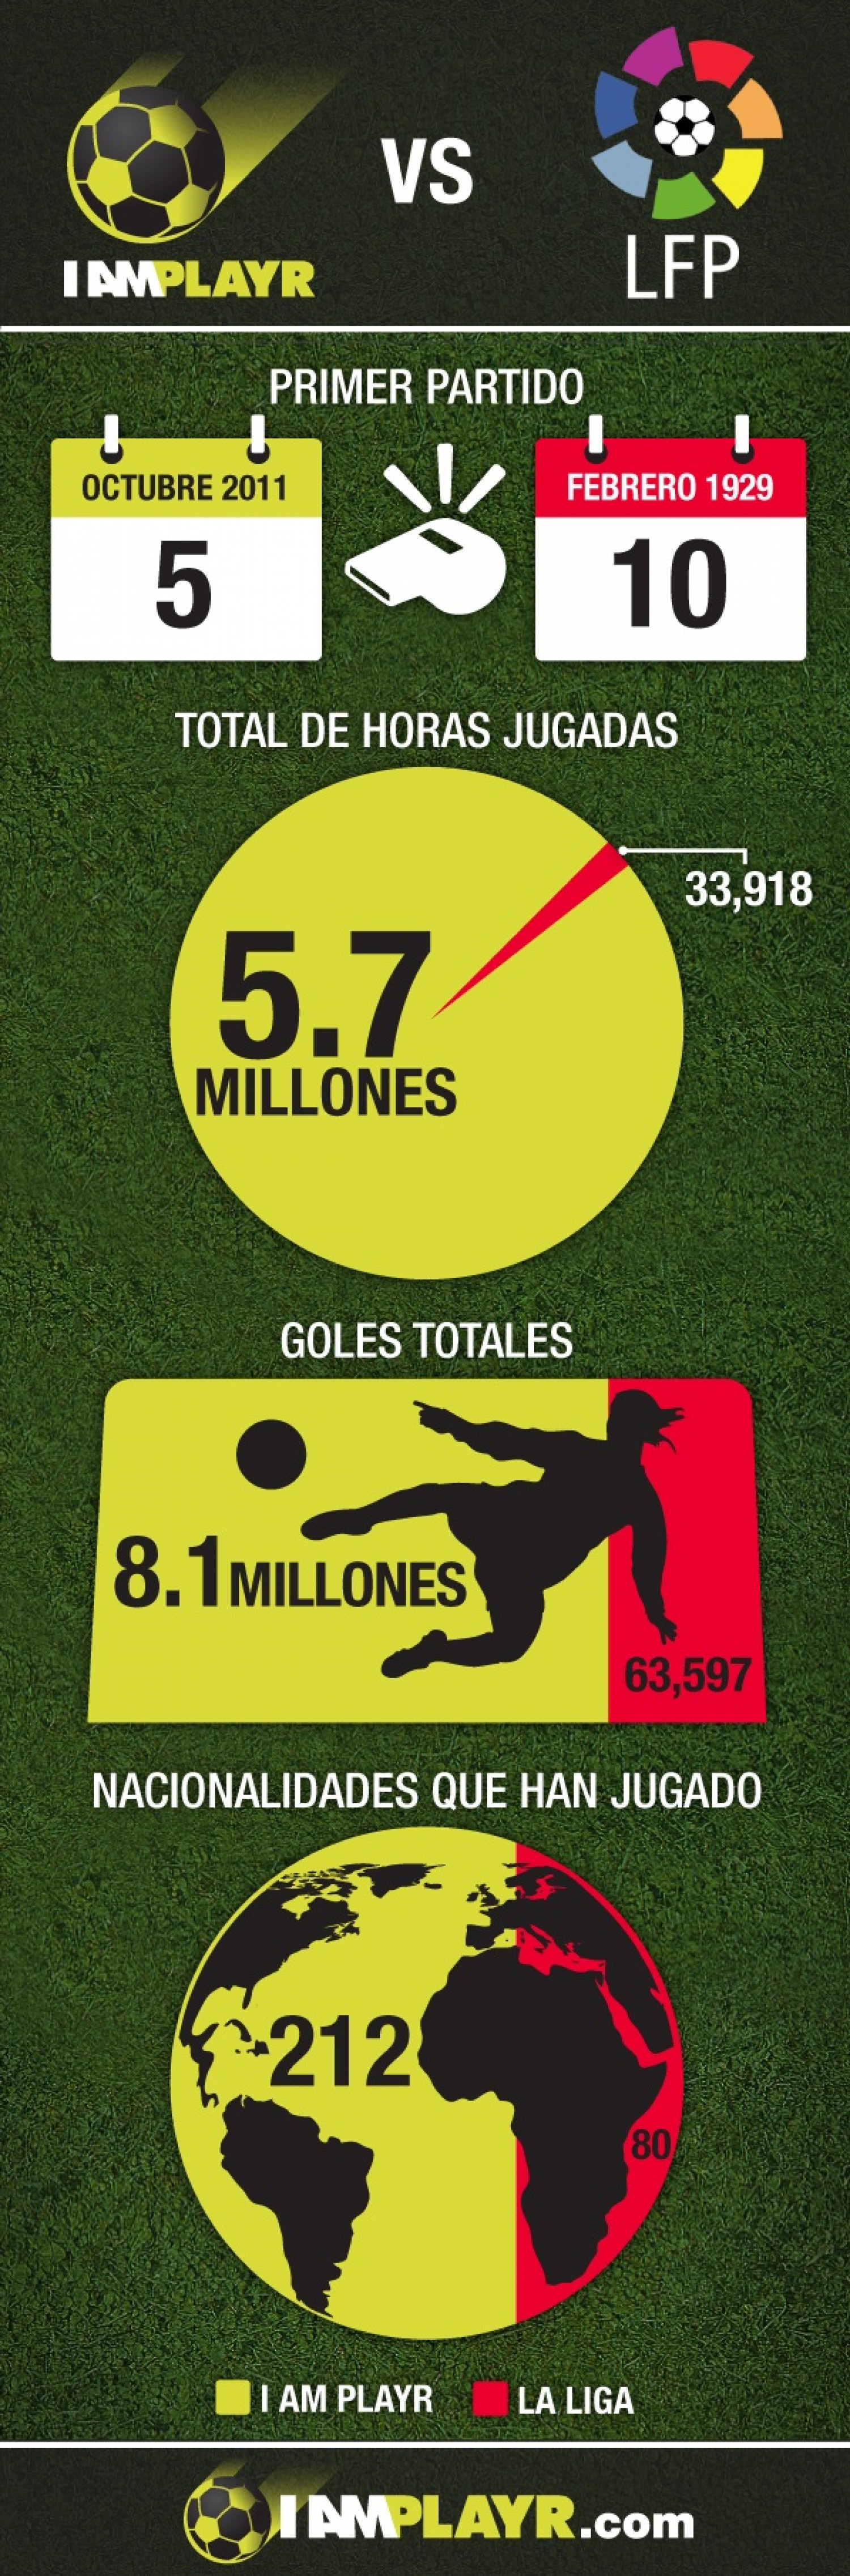 I AM PLAYR vs LA LIGA Infographic